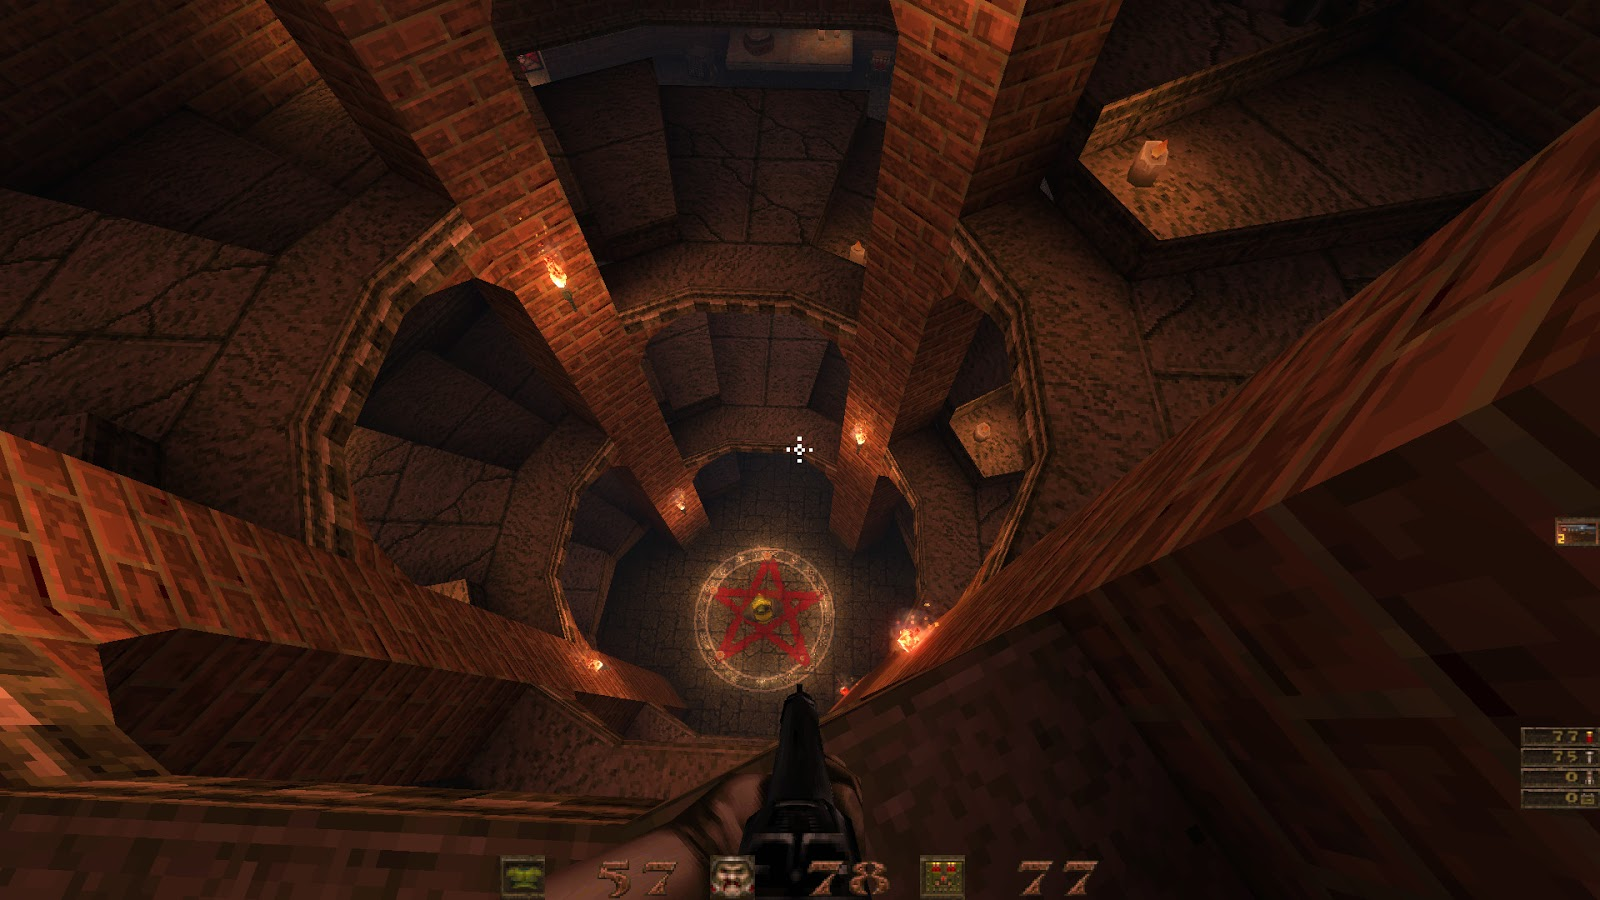 Review - QUAKE - Arcane Dimensions Mod v1 70 puts AAA FPS to